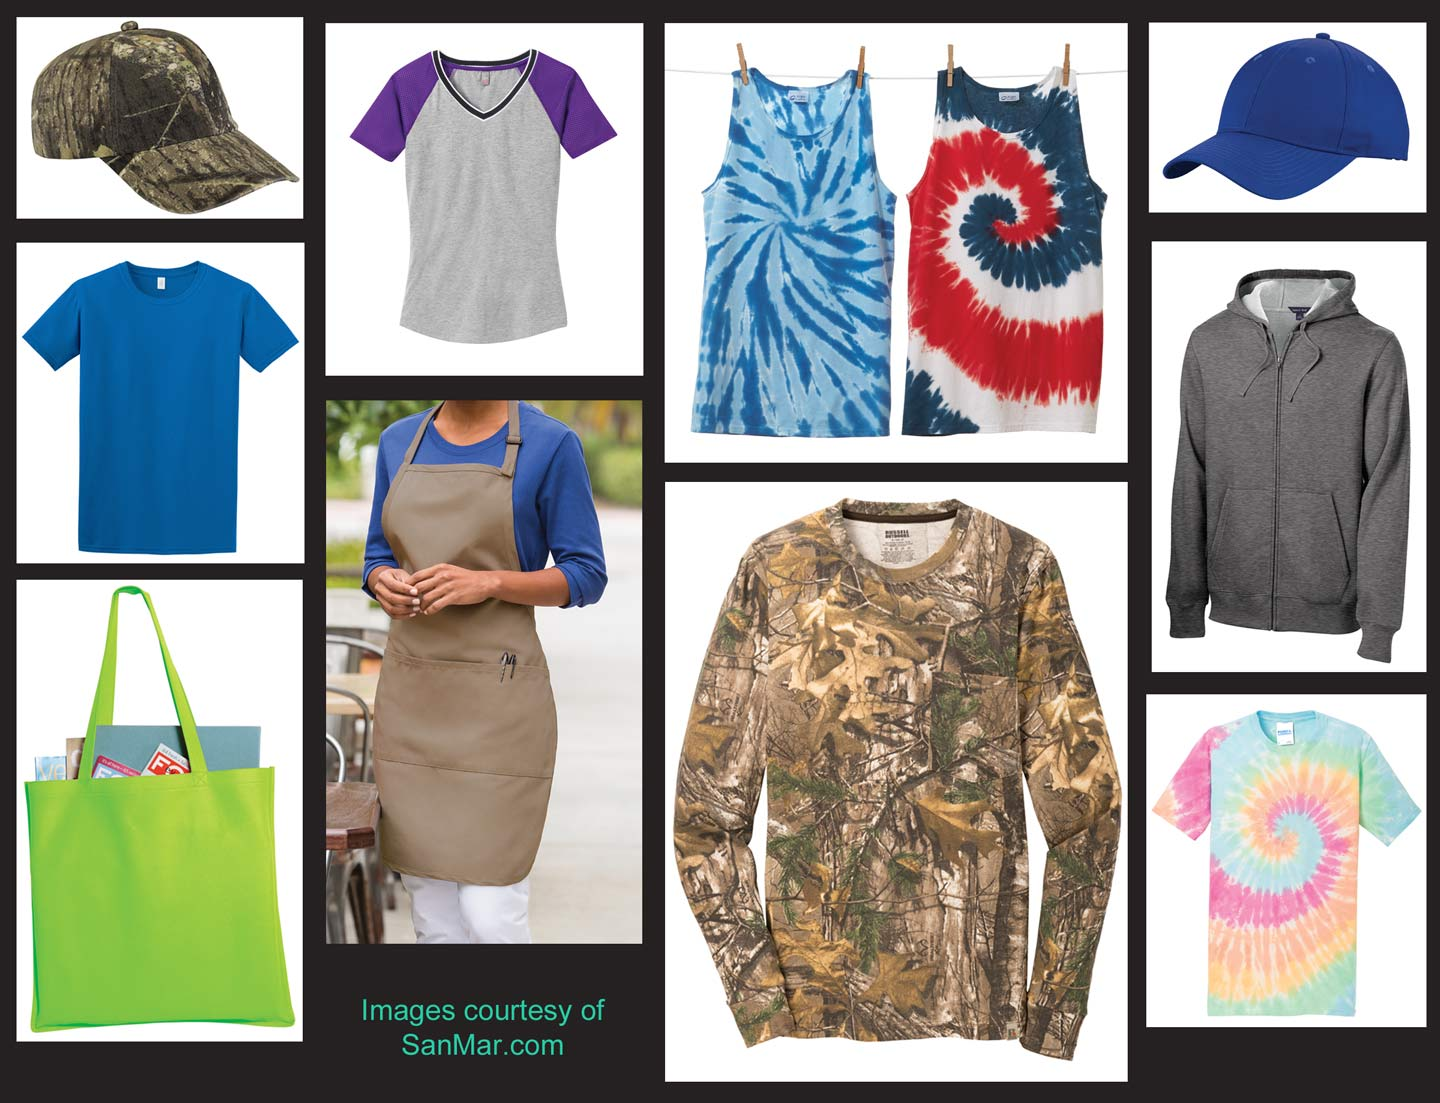 Items available from SanMar